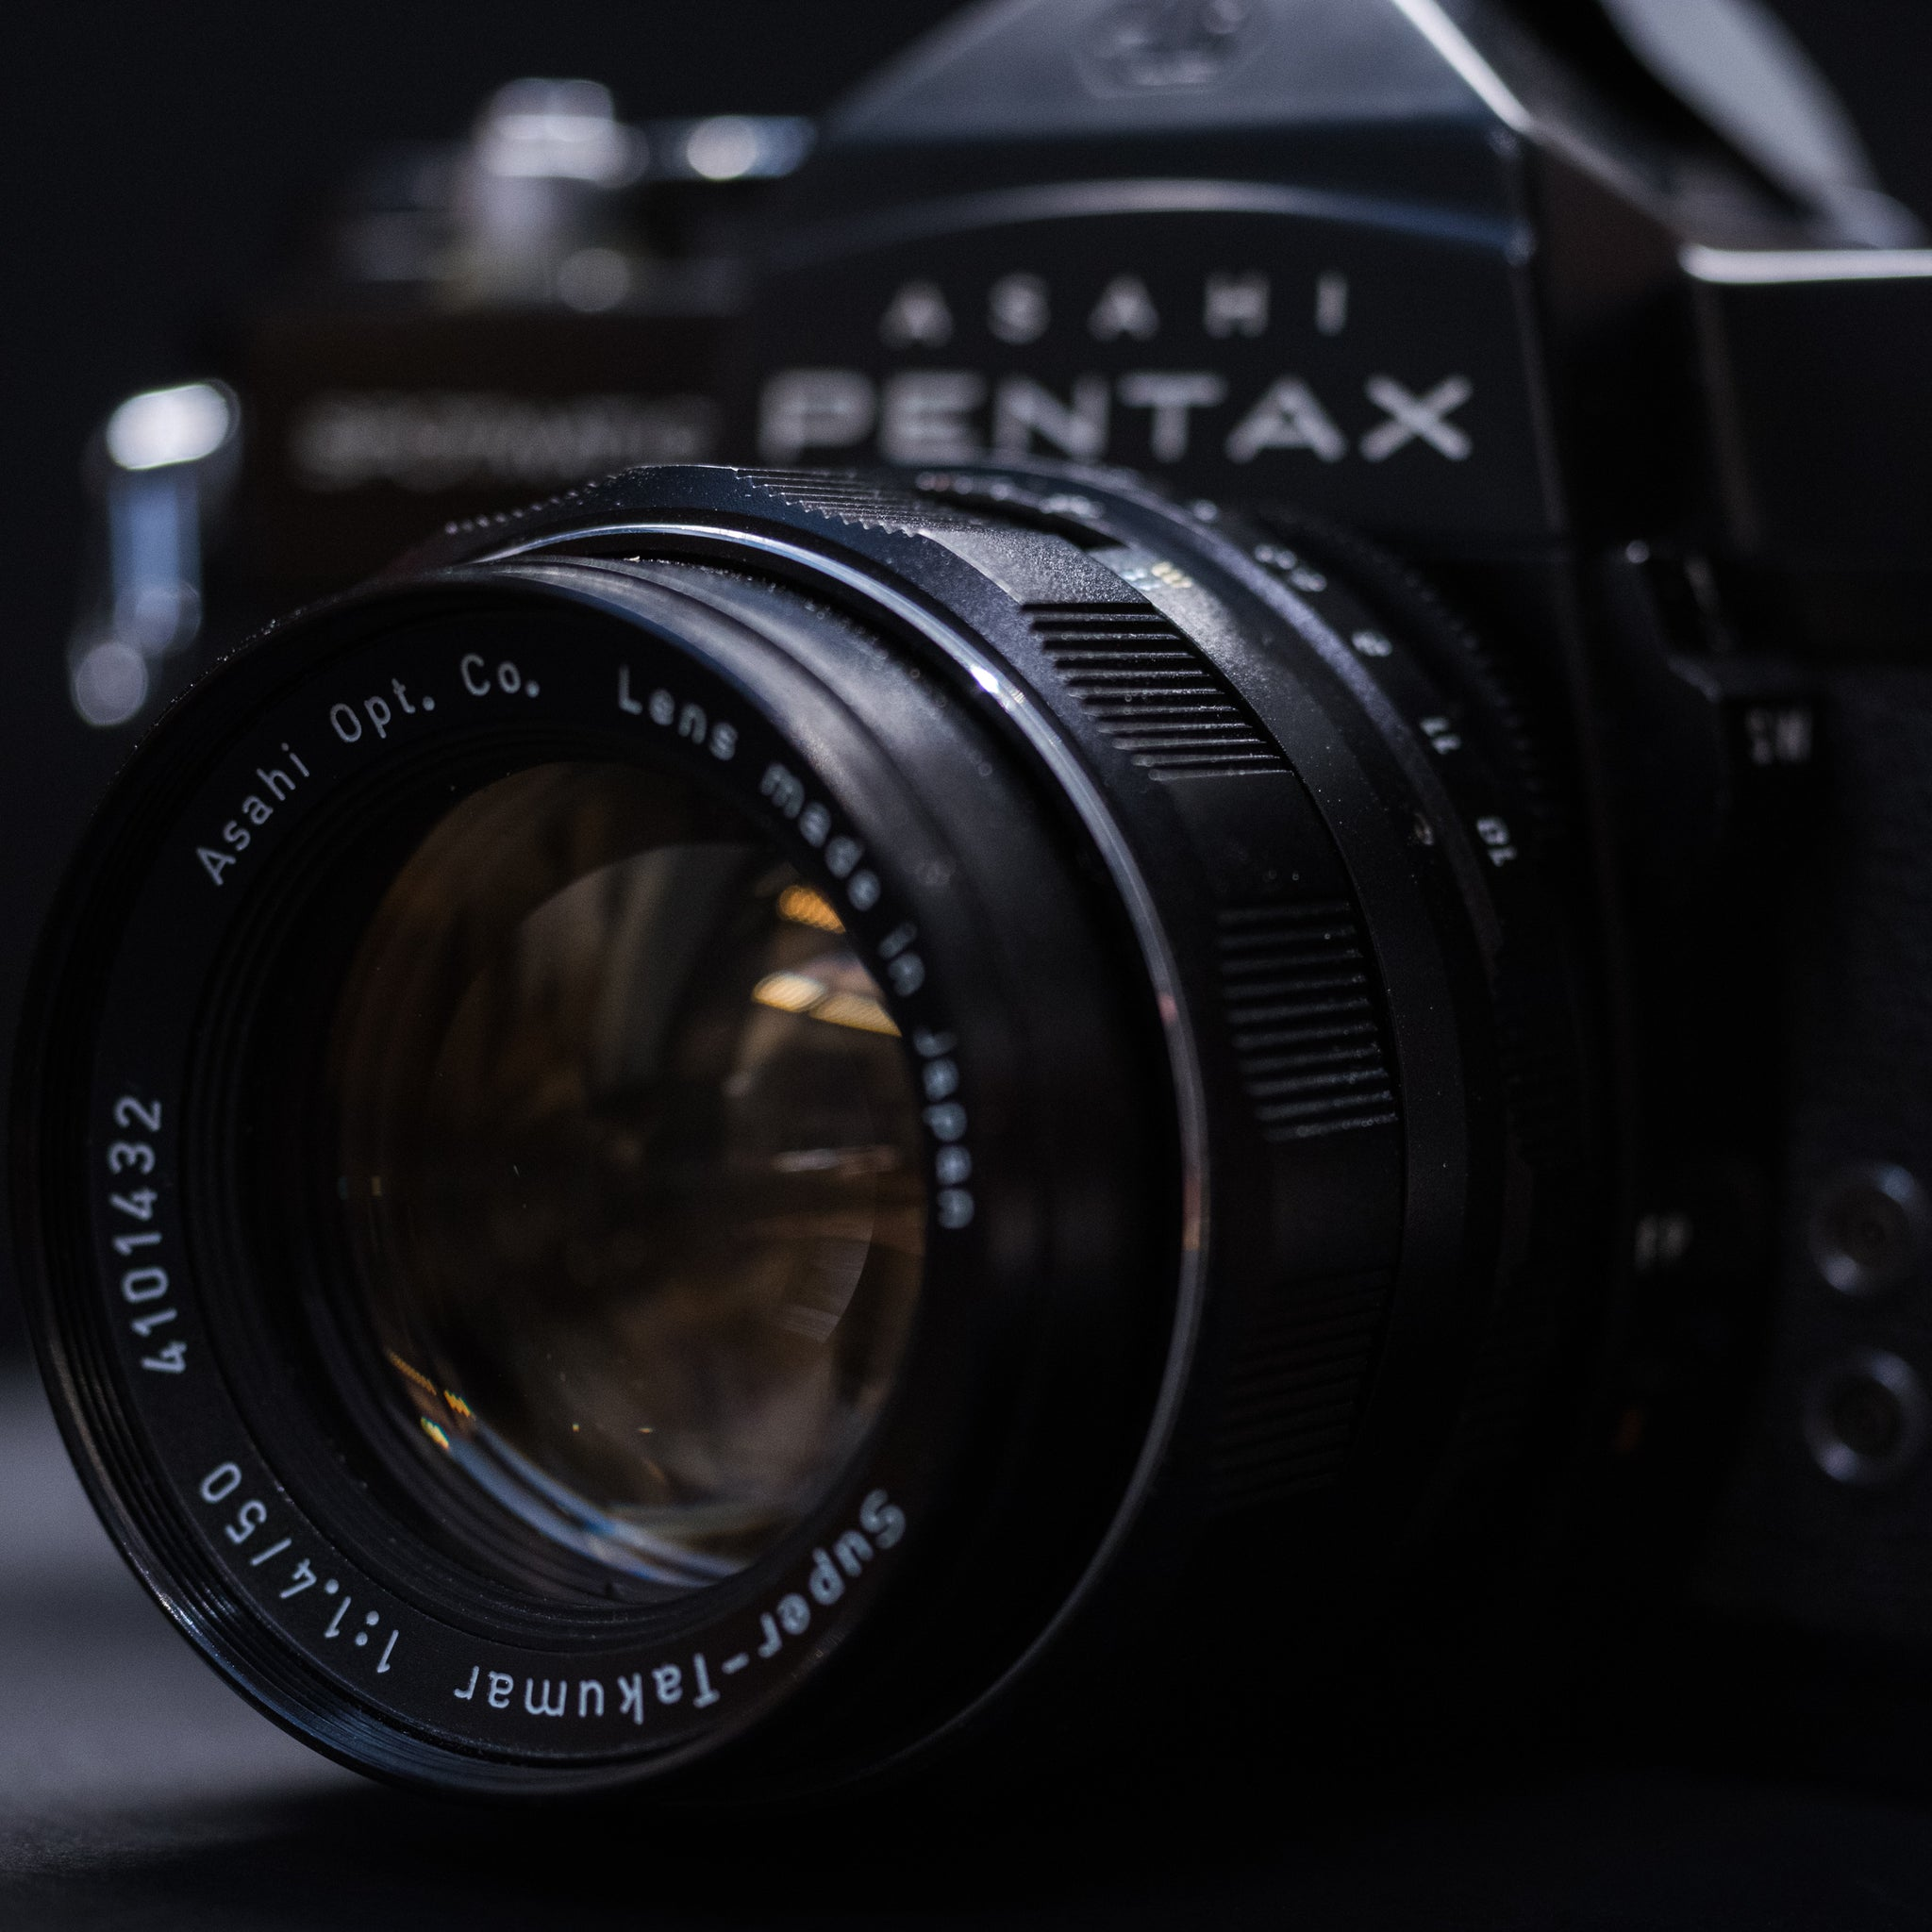 Pentax Spotmatic SP with Super Takumar 50mm 1.4 prime & 70-150 zoom lens